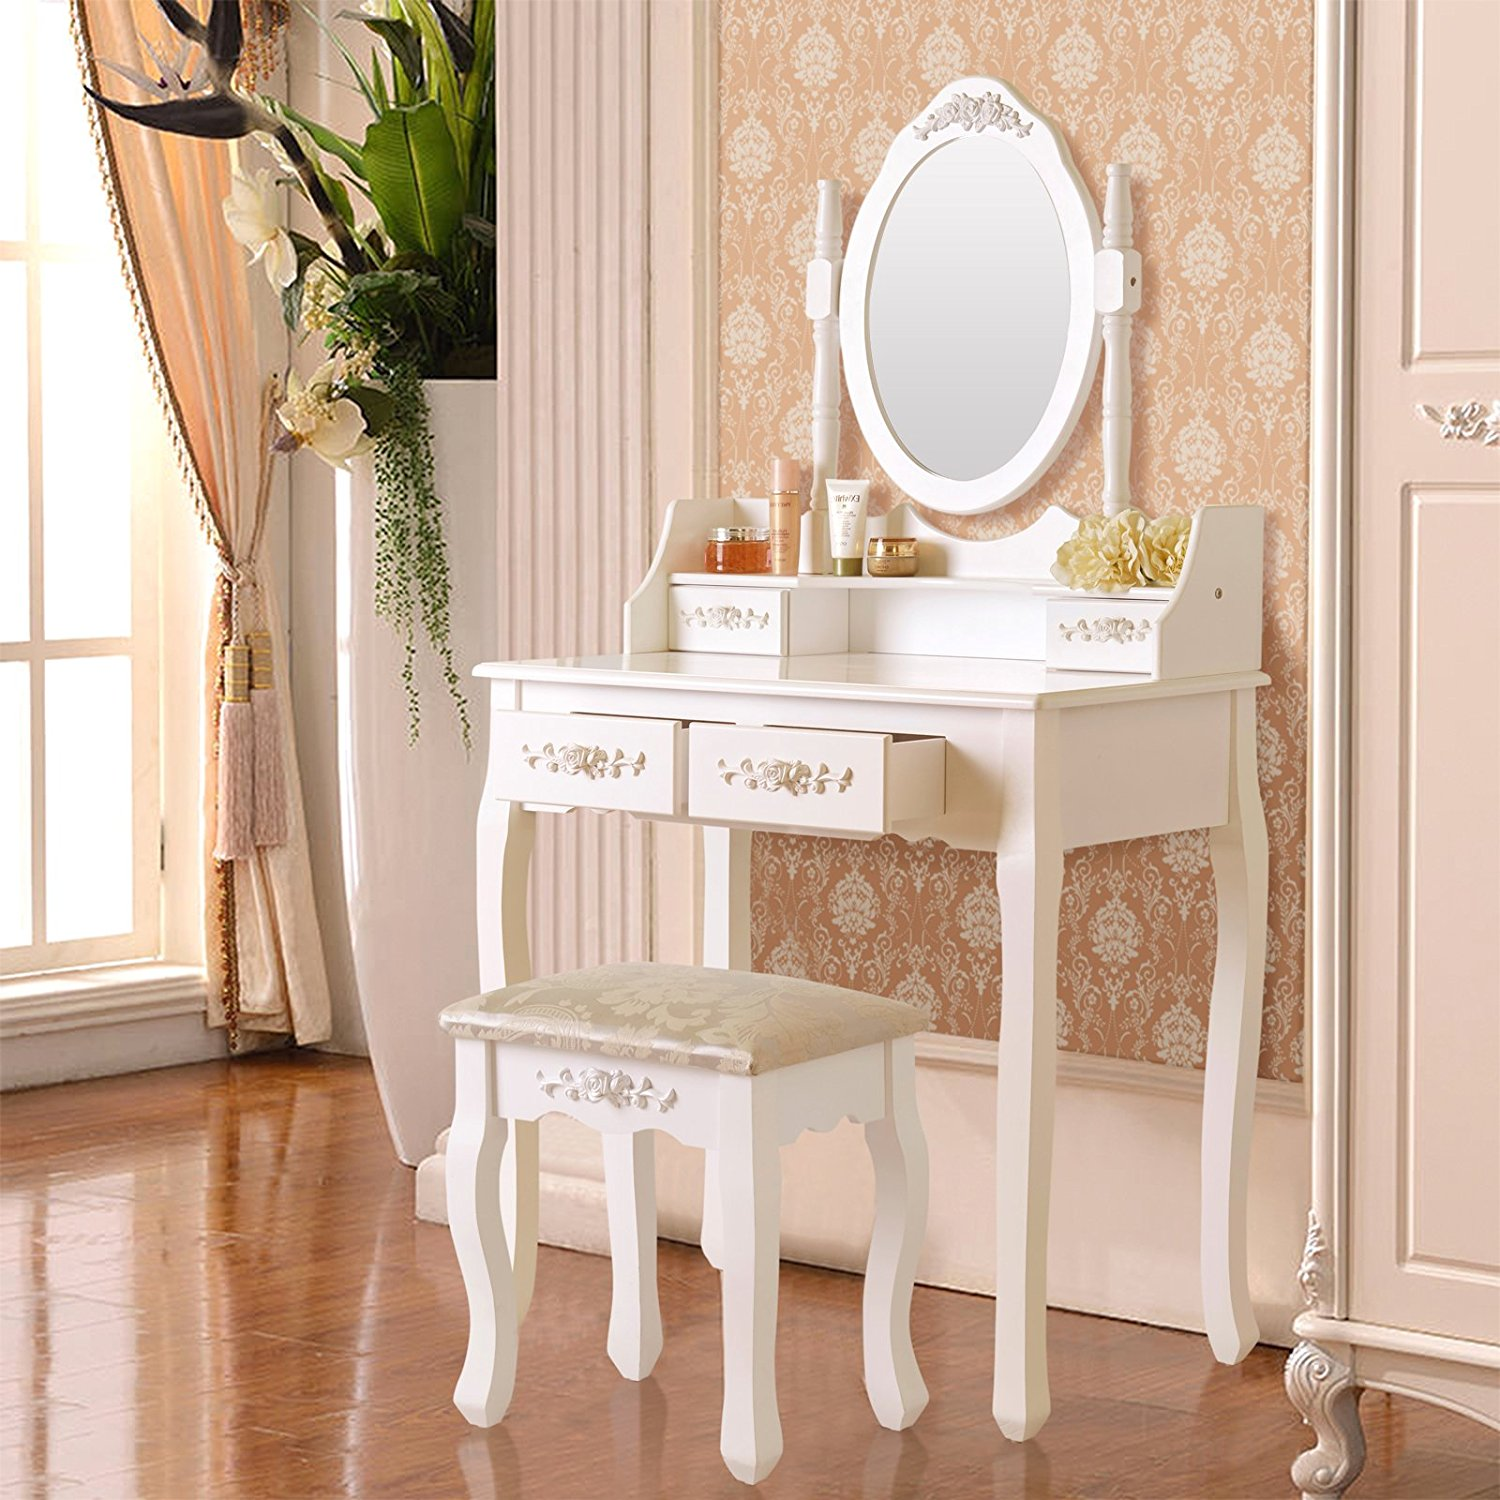 Ktaxon Elegance White Dressing Table Vanity And Stool Set Wood Makeup Desk With 4 Drawers Mirror Com